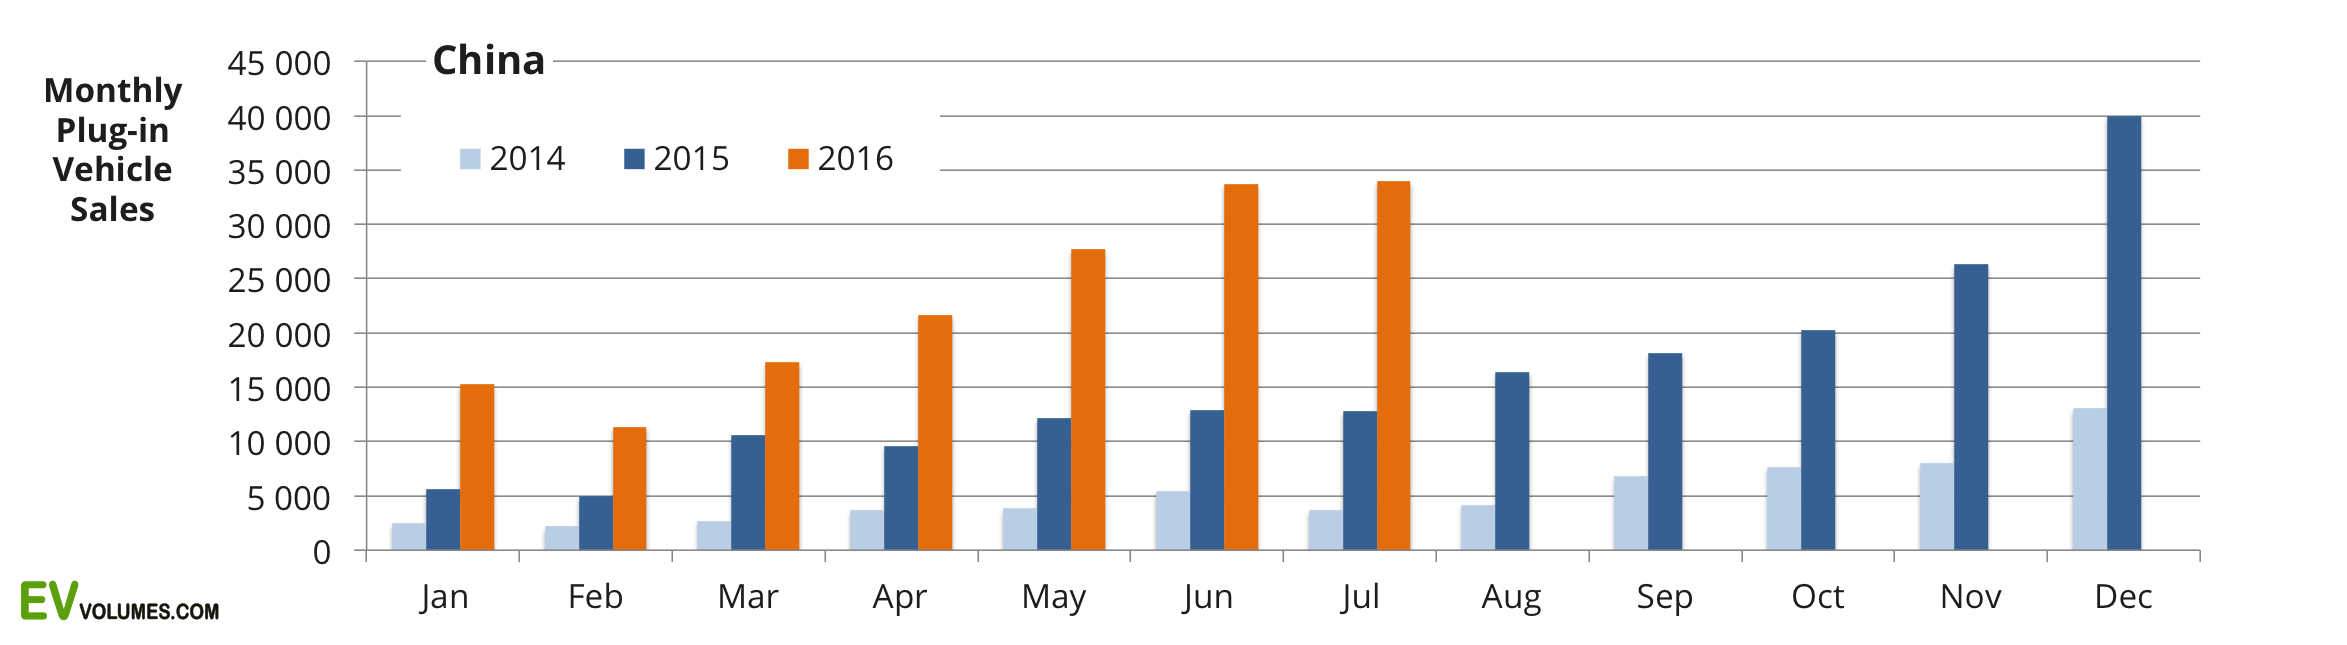 first China Plug-in Volumes for 2016 Q1 & Q2 + July Update image